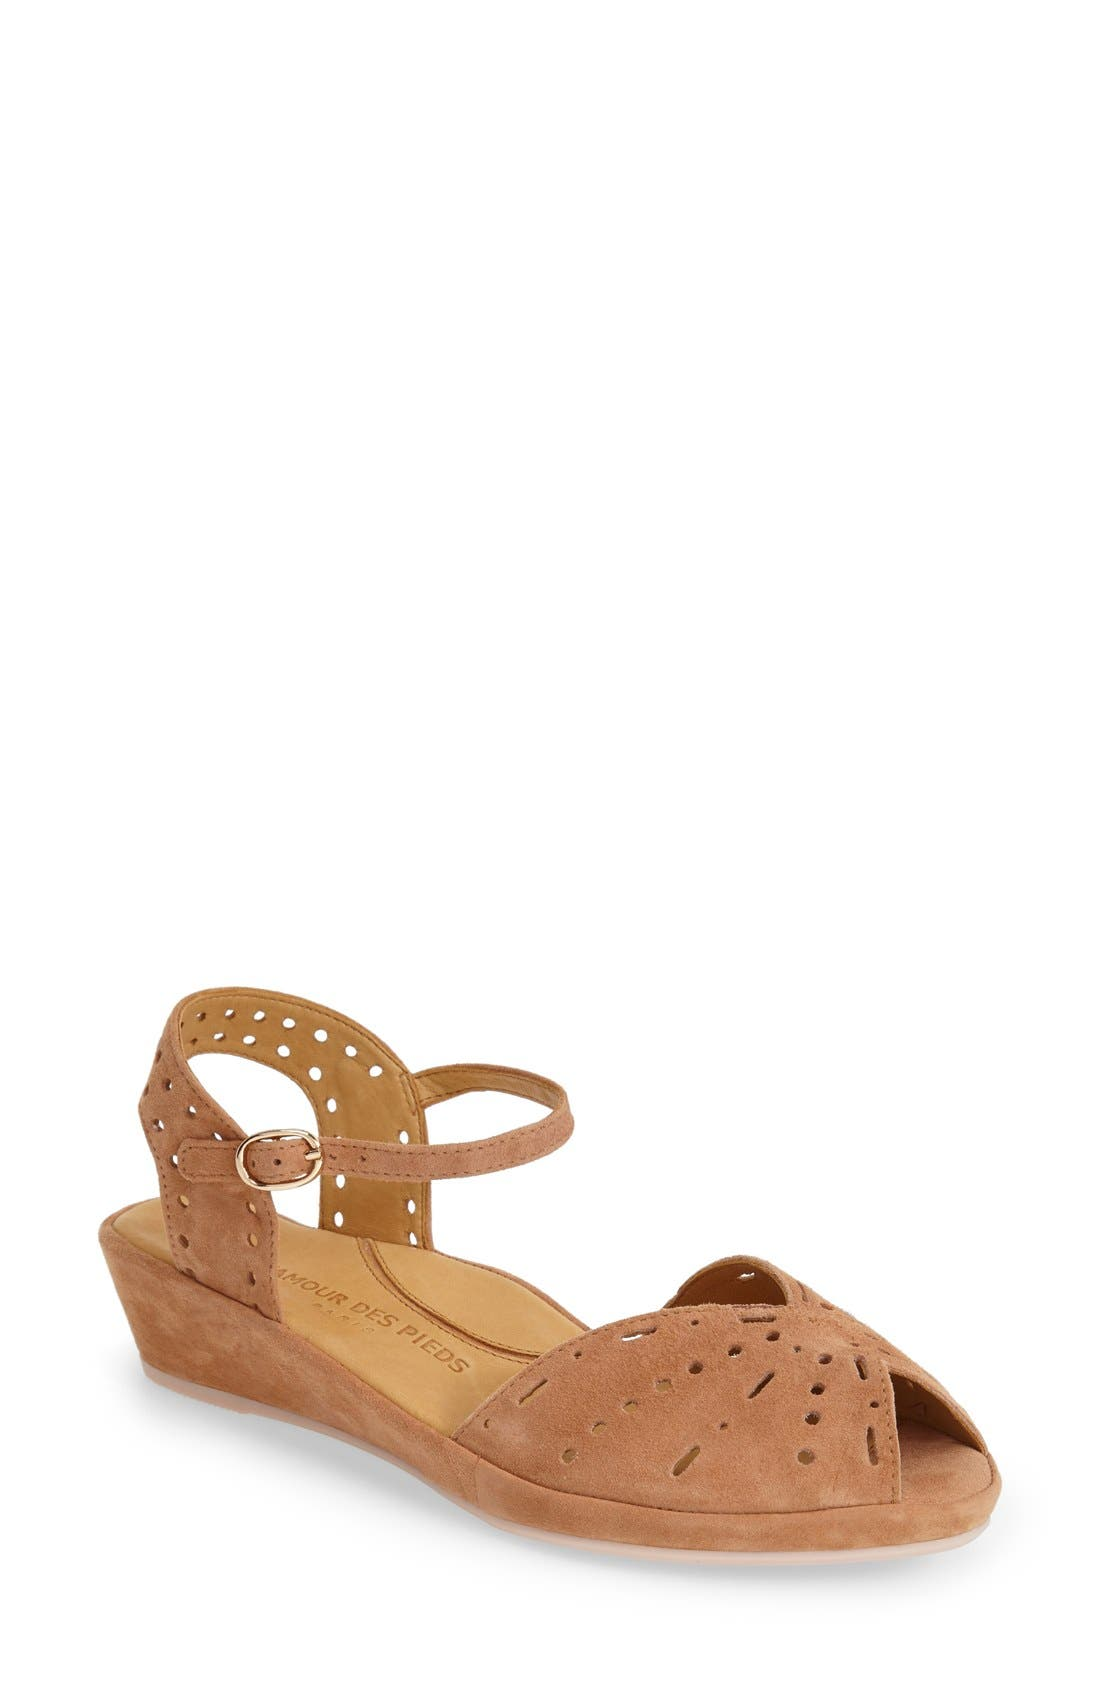 Alternate Image 1 Selected - L'Amour des Pieds 'Brenn' Ankle Strap Sandal (Women)